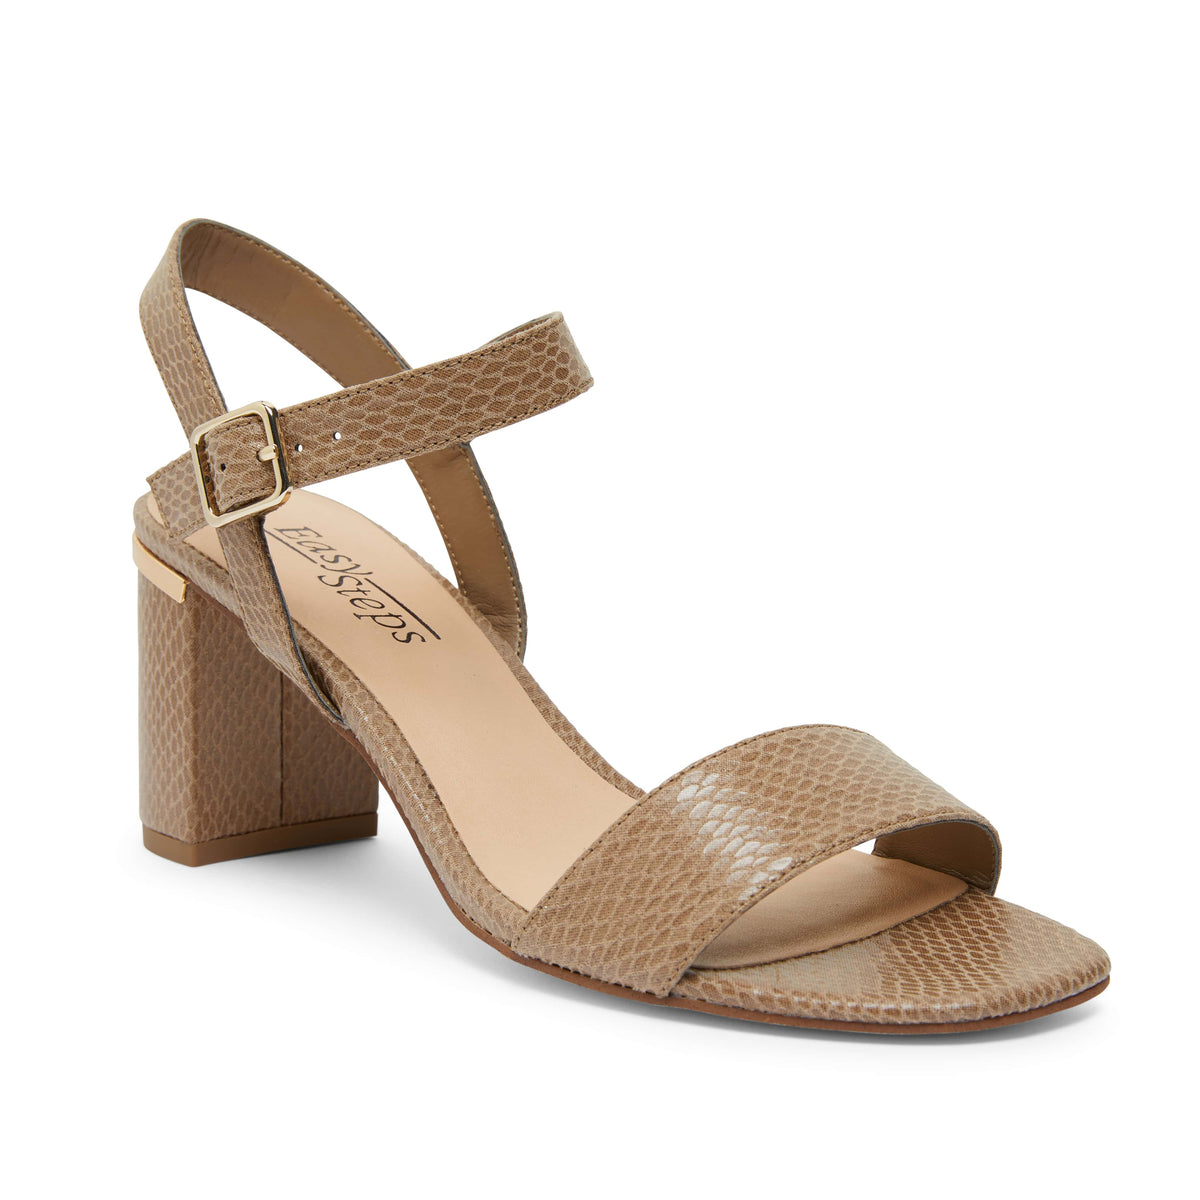 Uno Heel in Taupe Print Smooth